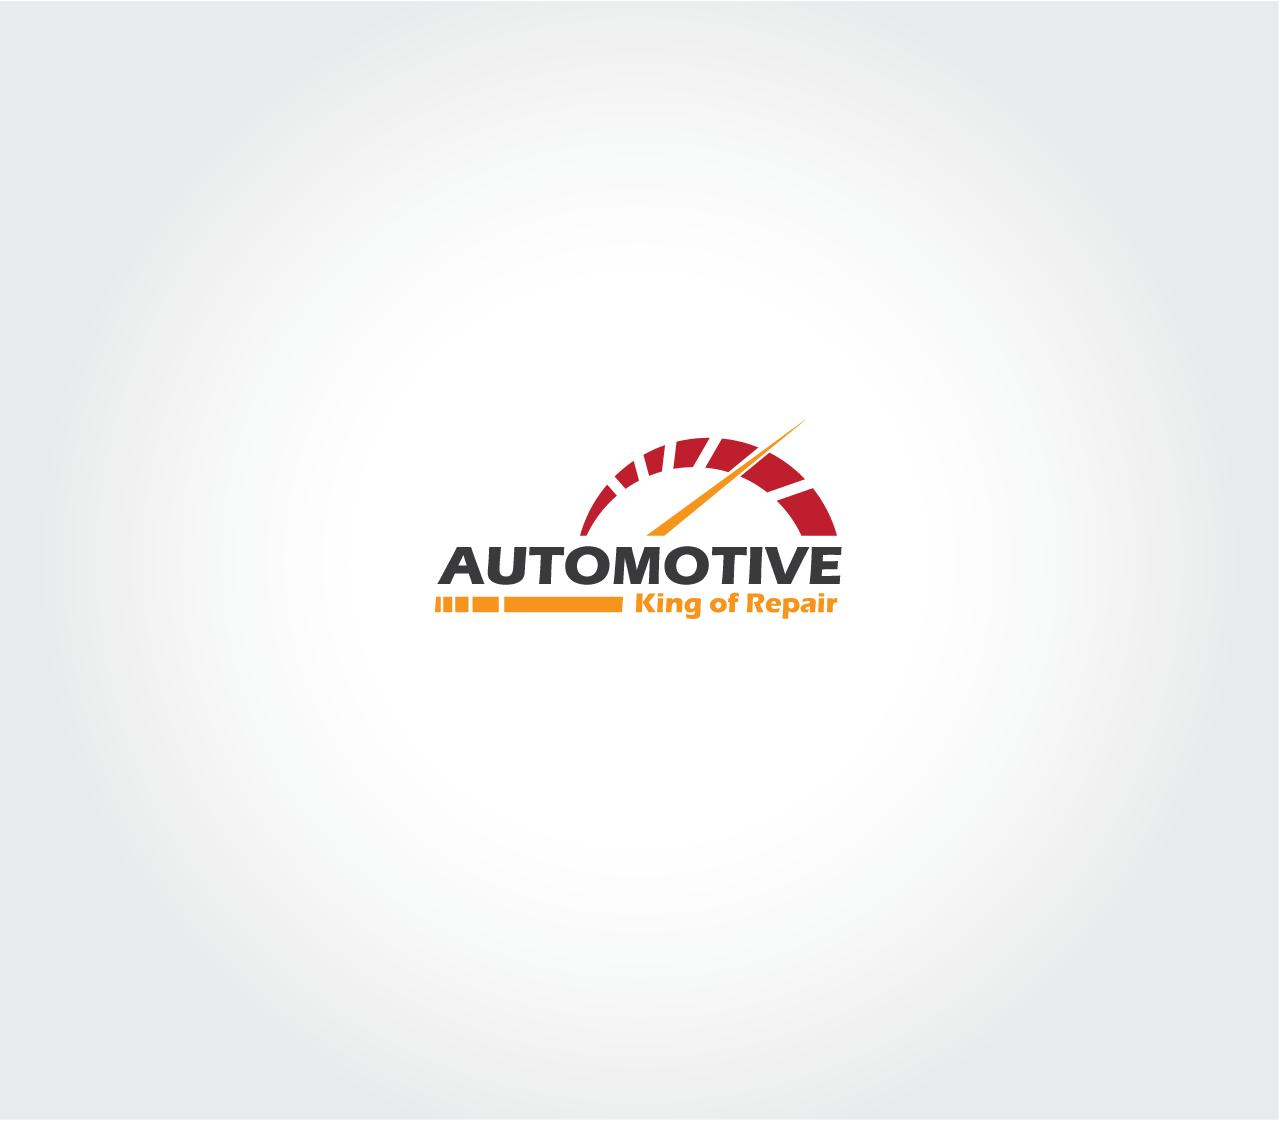 Express Automotive Logo Design by yantodesign - 107476